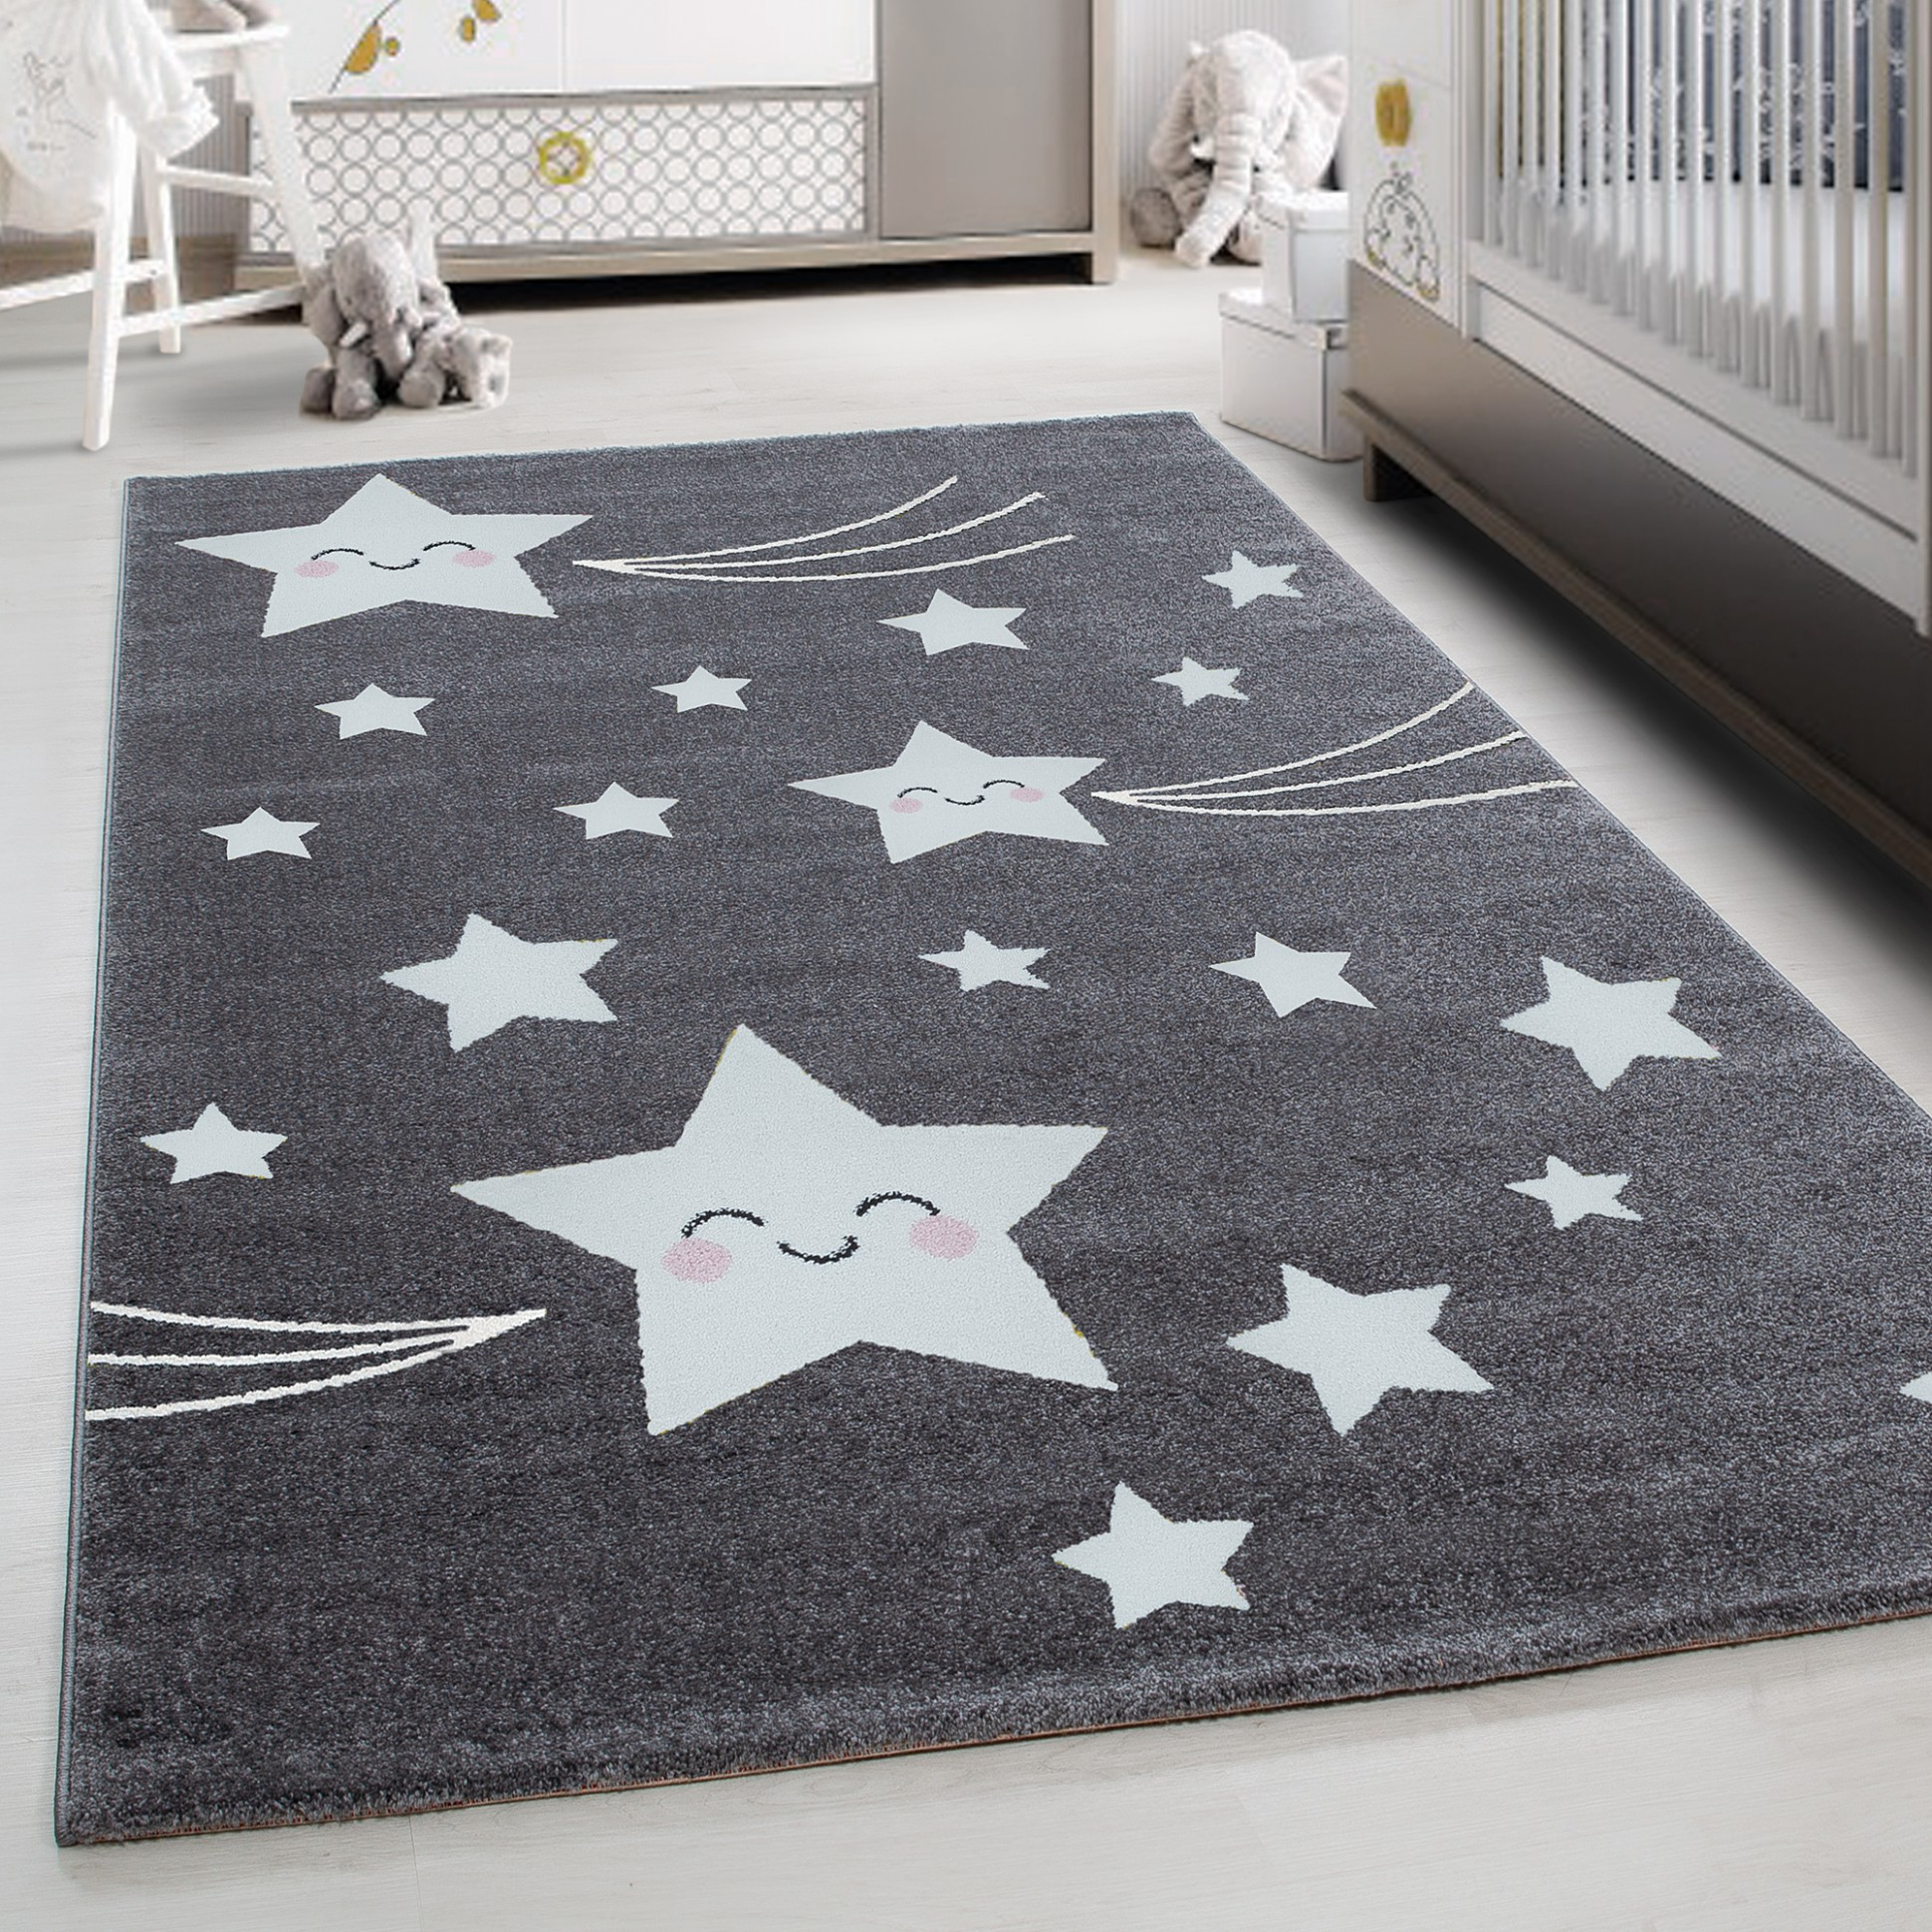 TEPPIUM Kids Play Mat rug Baby Room Carpet with Stars Grey carpet  Ceres  Webshop - Baby Room Carpet